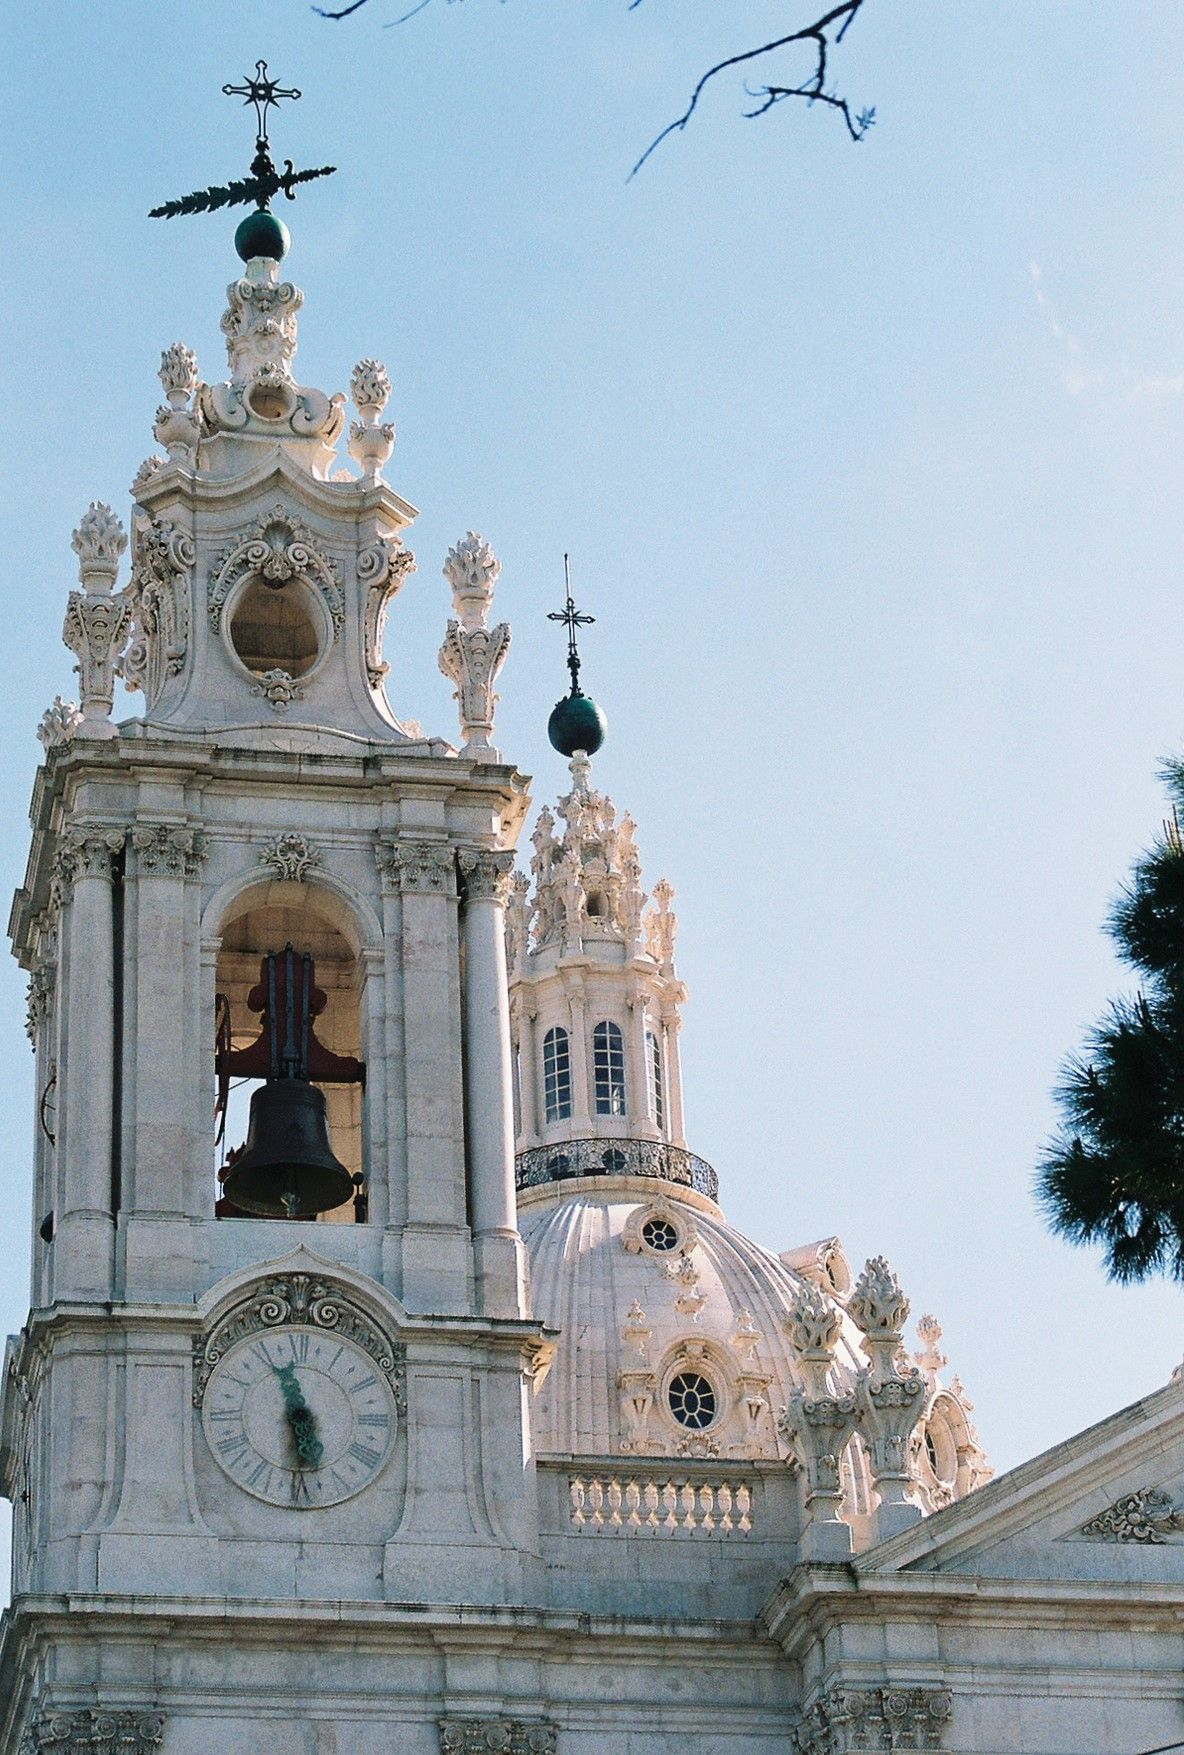 Lisbon, Portugal - Estreala Basilica. Amazing colors and architecture in the city. Original Photography by R. Stowe